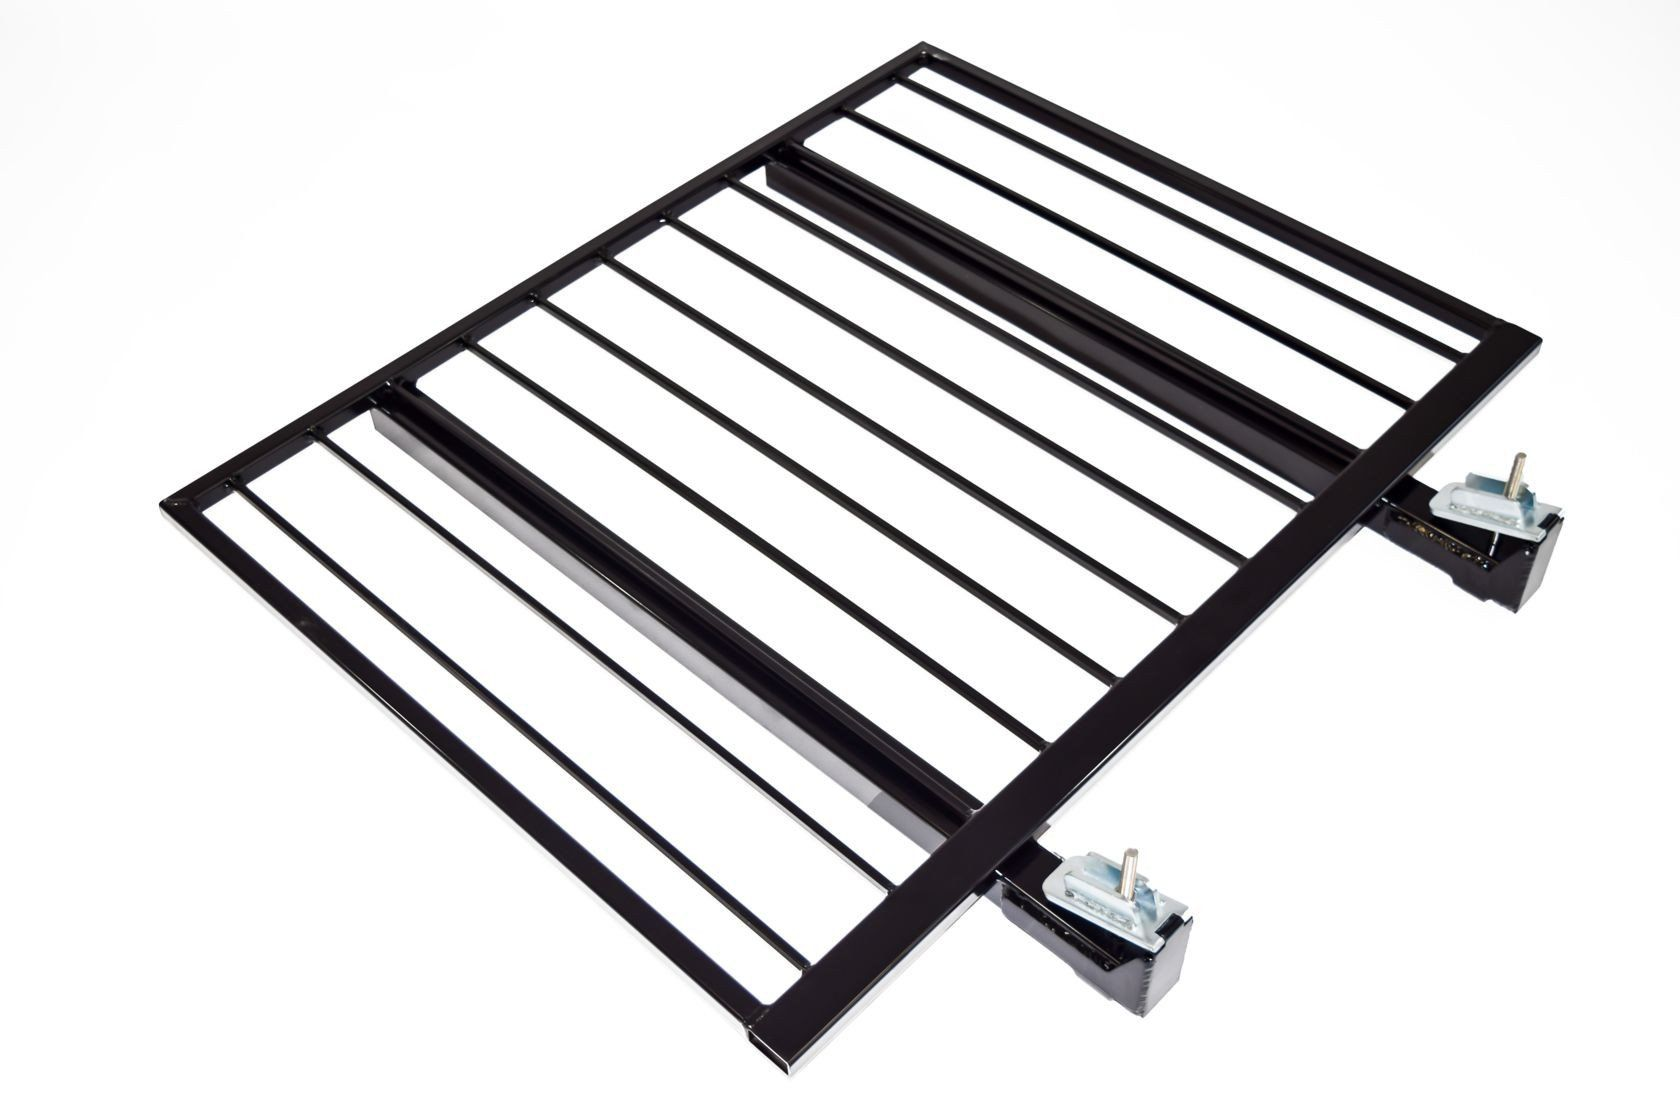 Aluminum Guardrail Frame (Code compliant for public use) Black Finish 4'x36